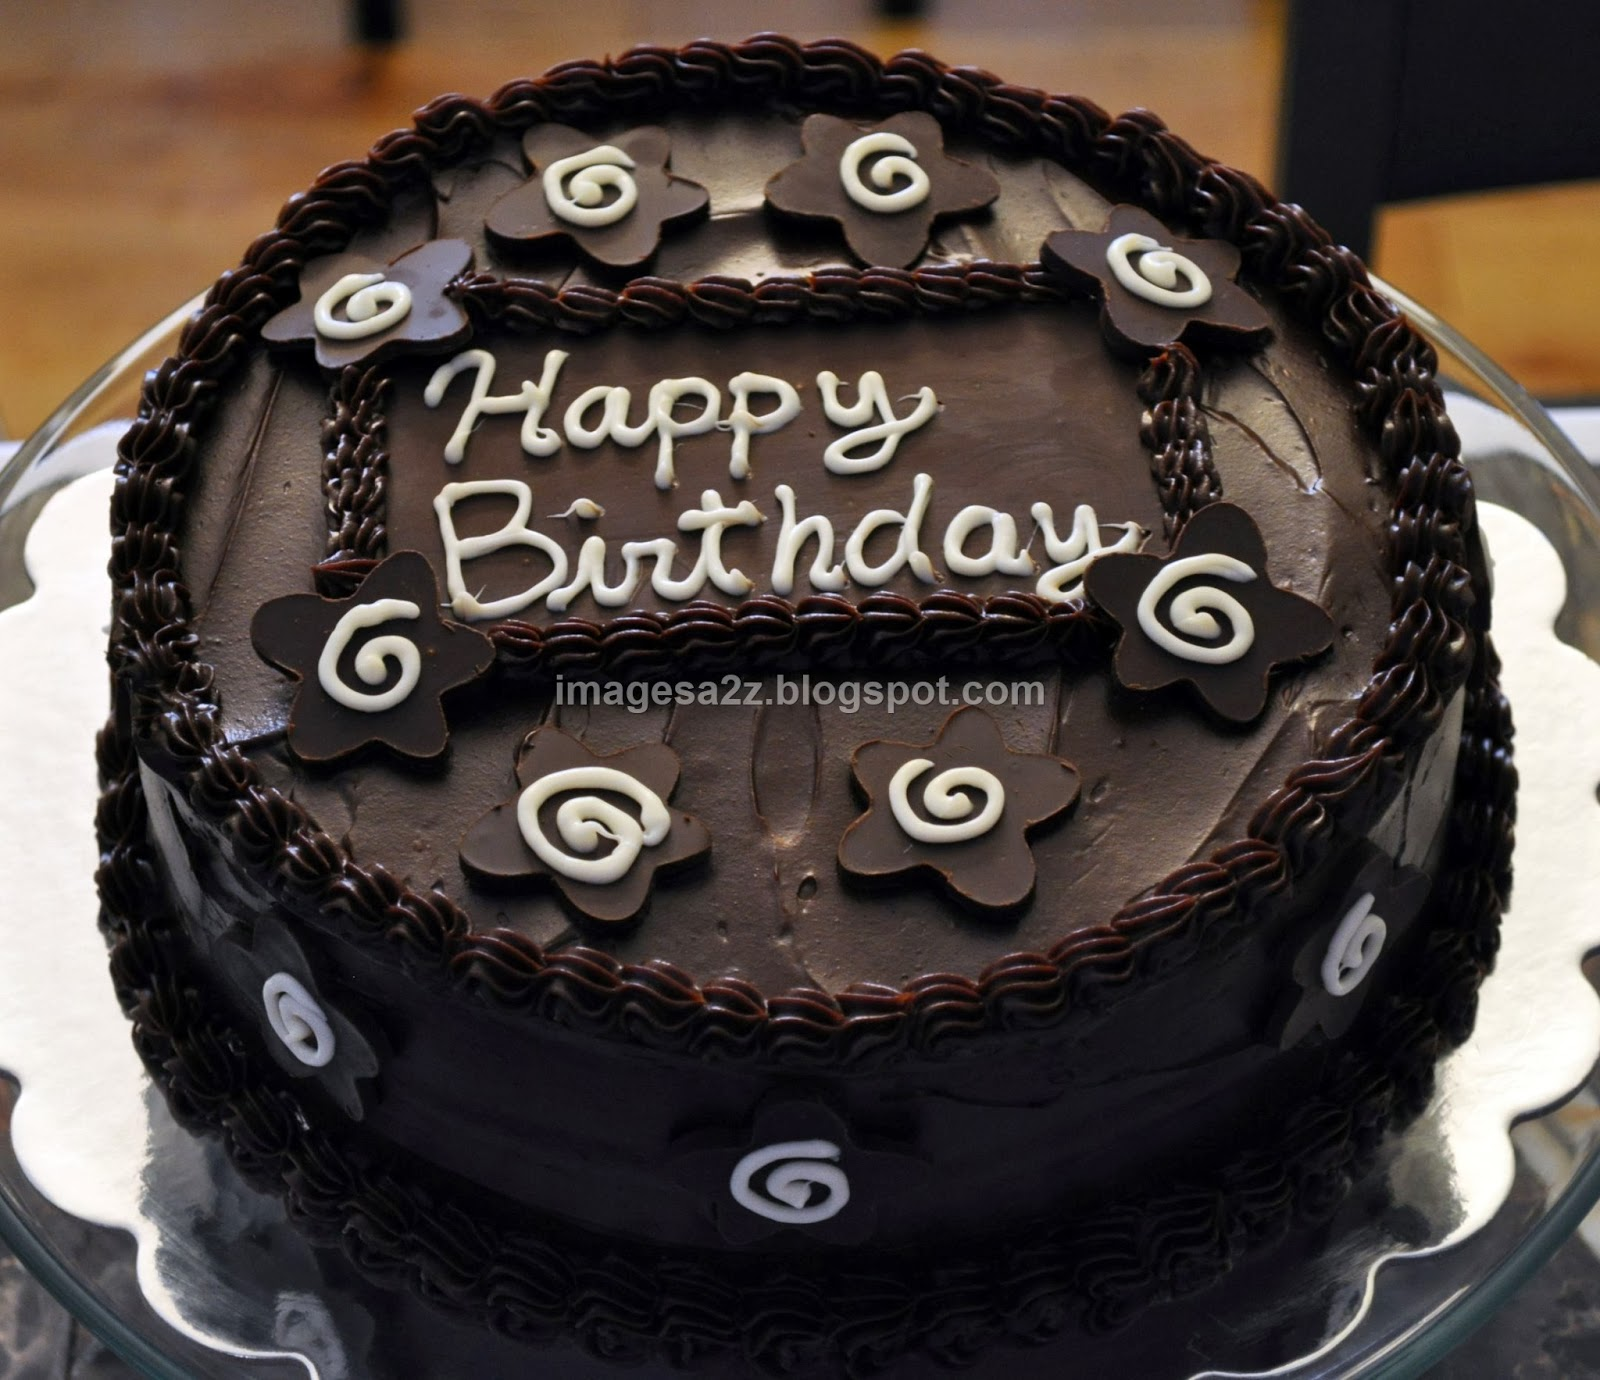 Birthday Cake Pictures For Friend : attractive birthday wishes for friends cake birthday ...